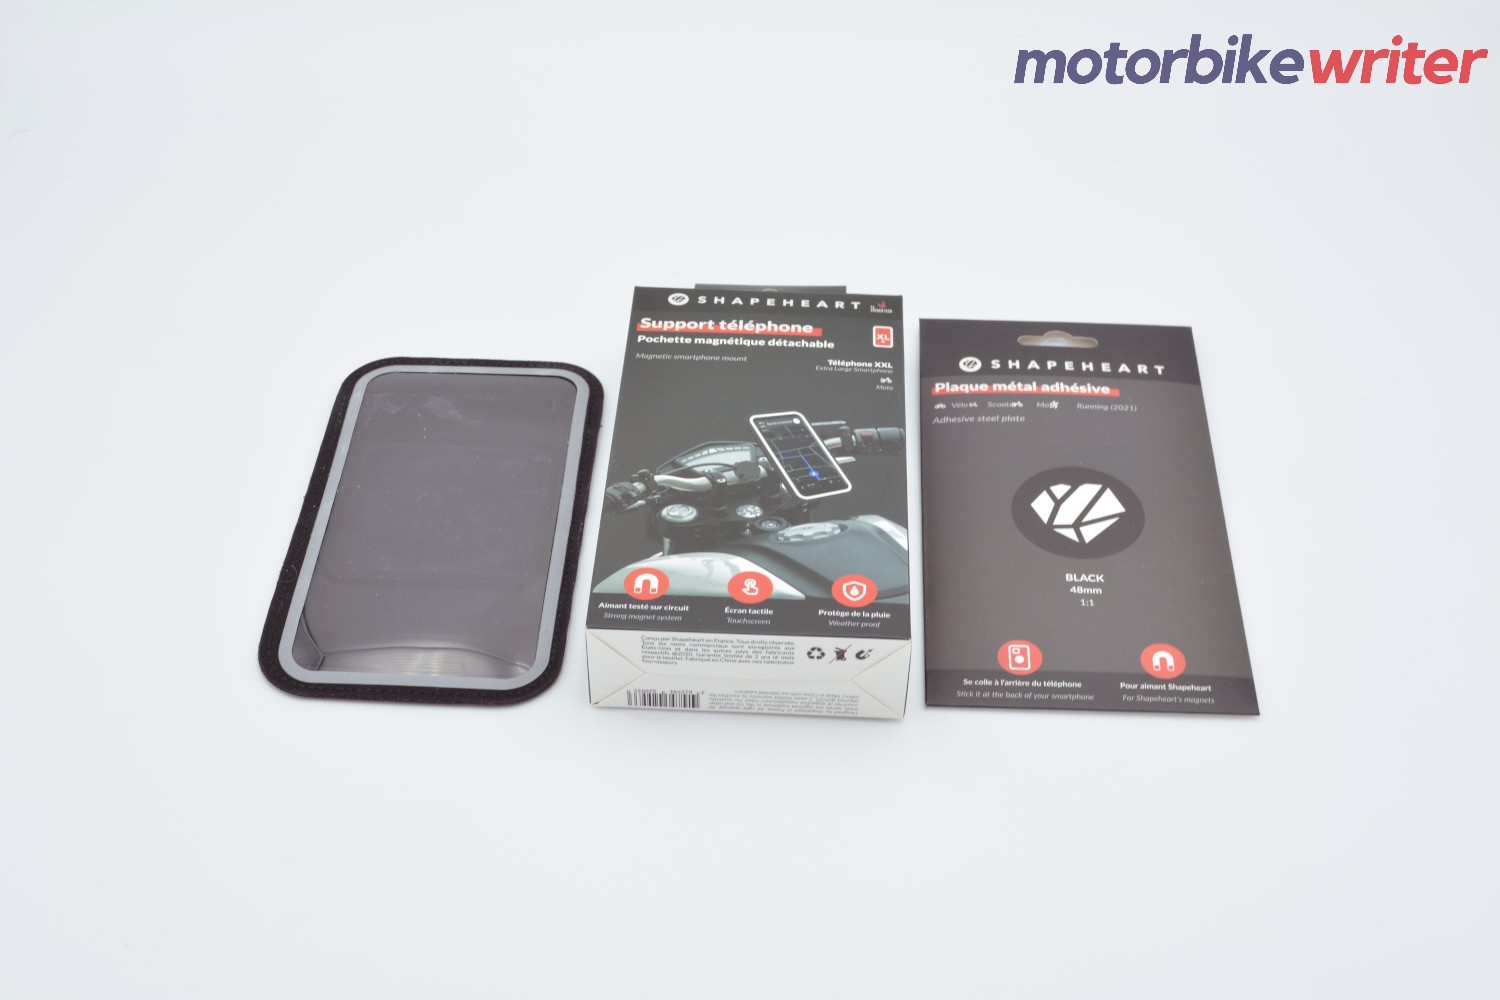 Shapeheart Classic Handlebar Phone Mounting System Box and Contents